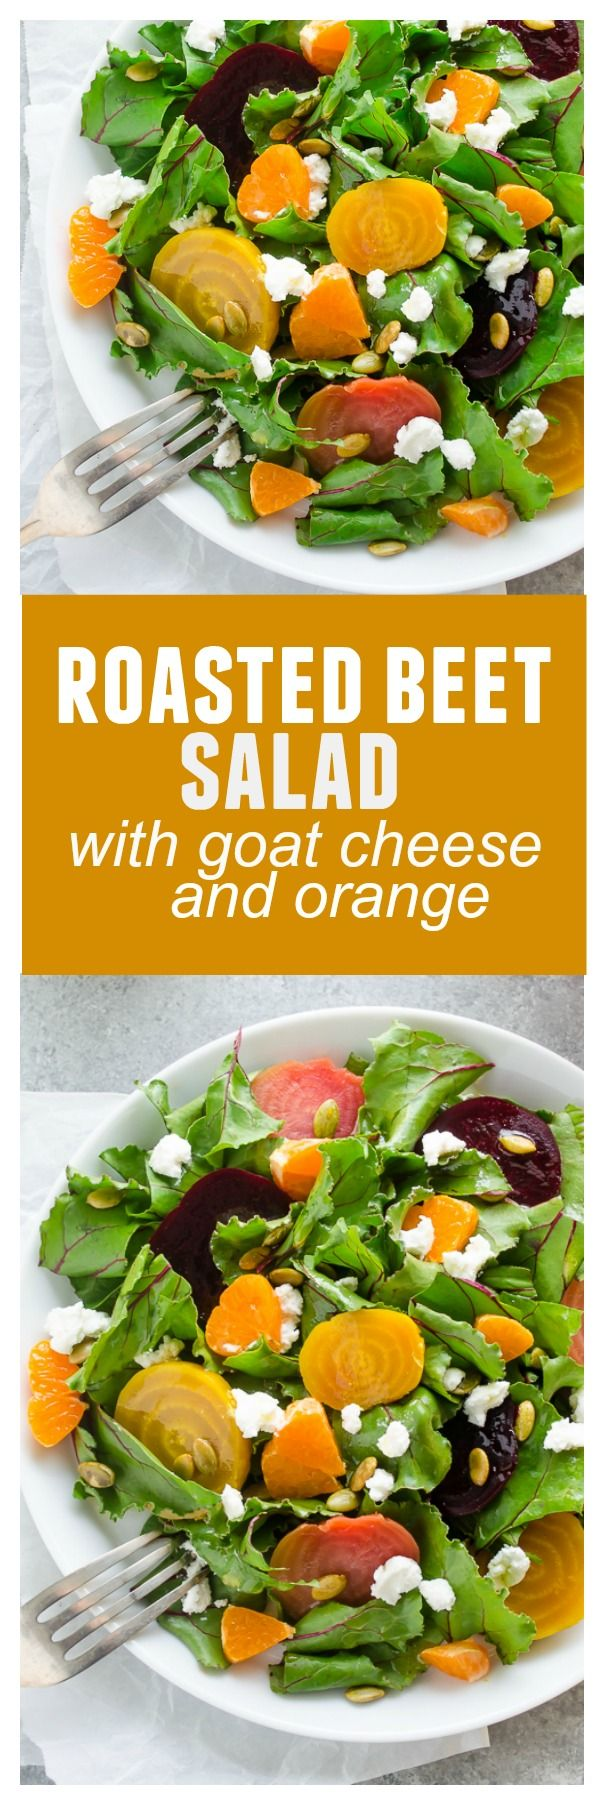 Roasted Beet Salad with Goat Cheese and Orange is sweet roasted beets ...